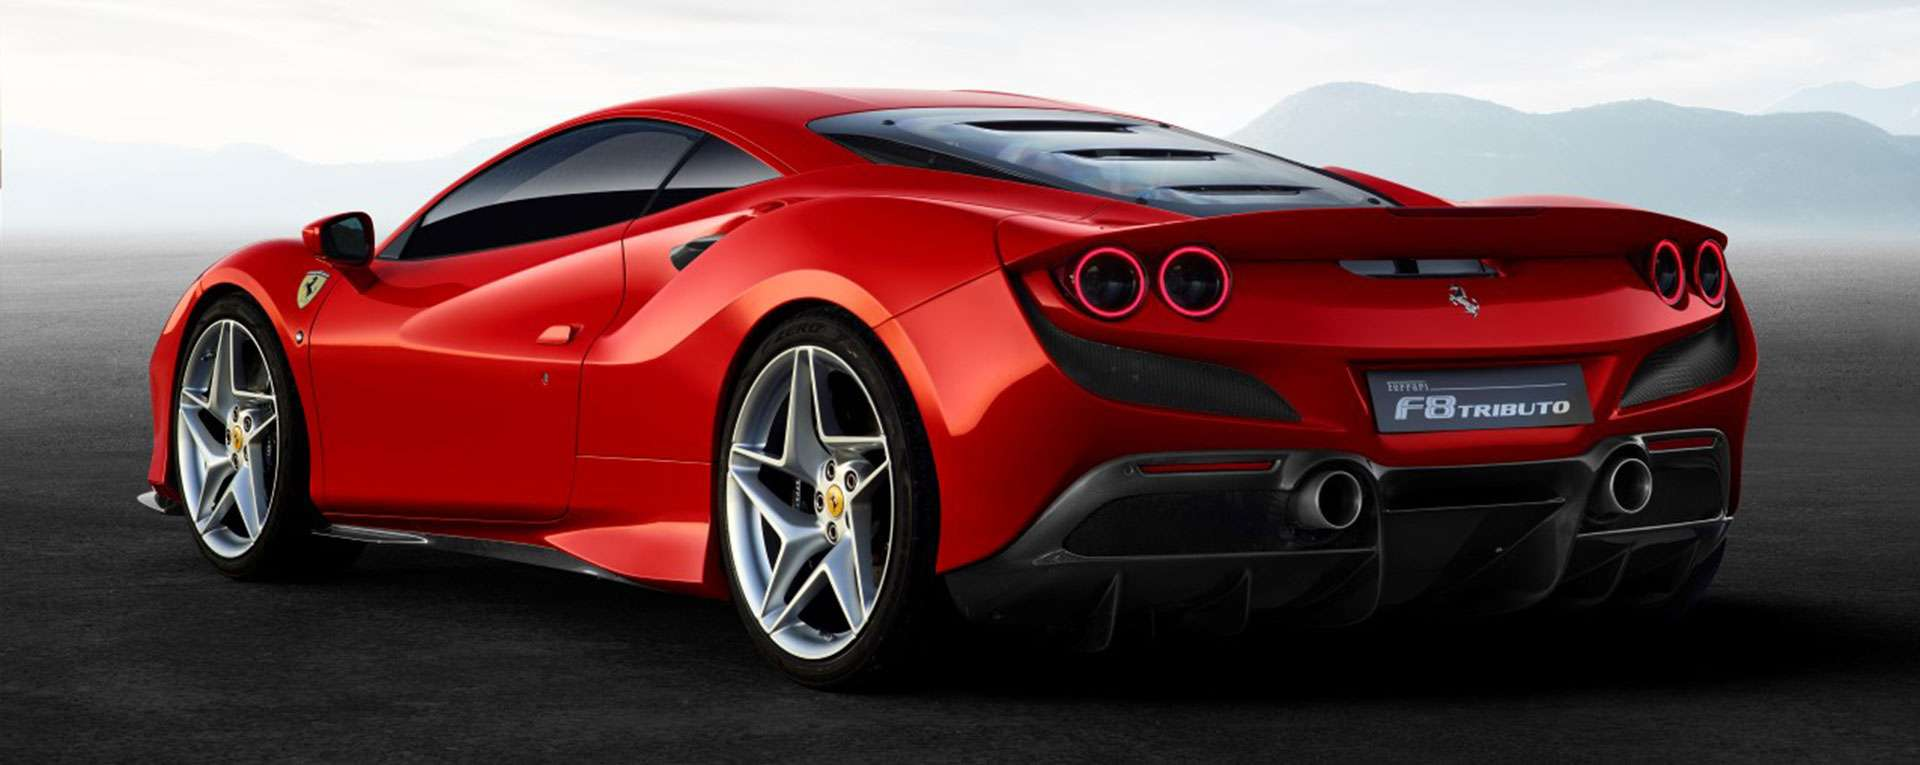 FERRARI F8 TRIBUTO Main Slide